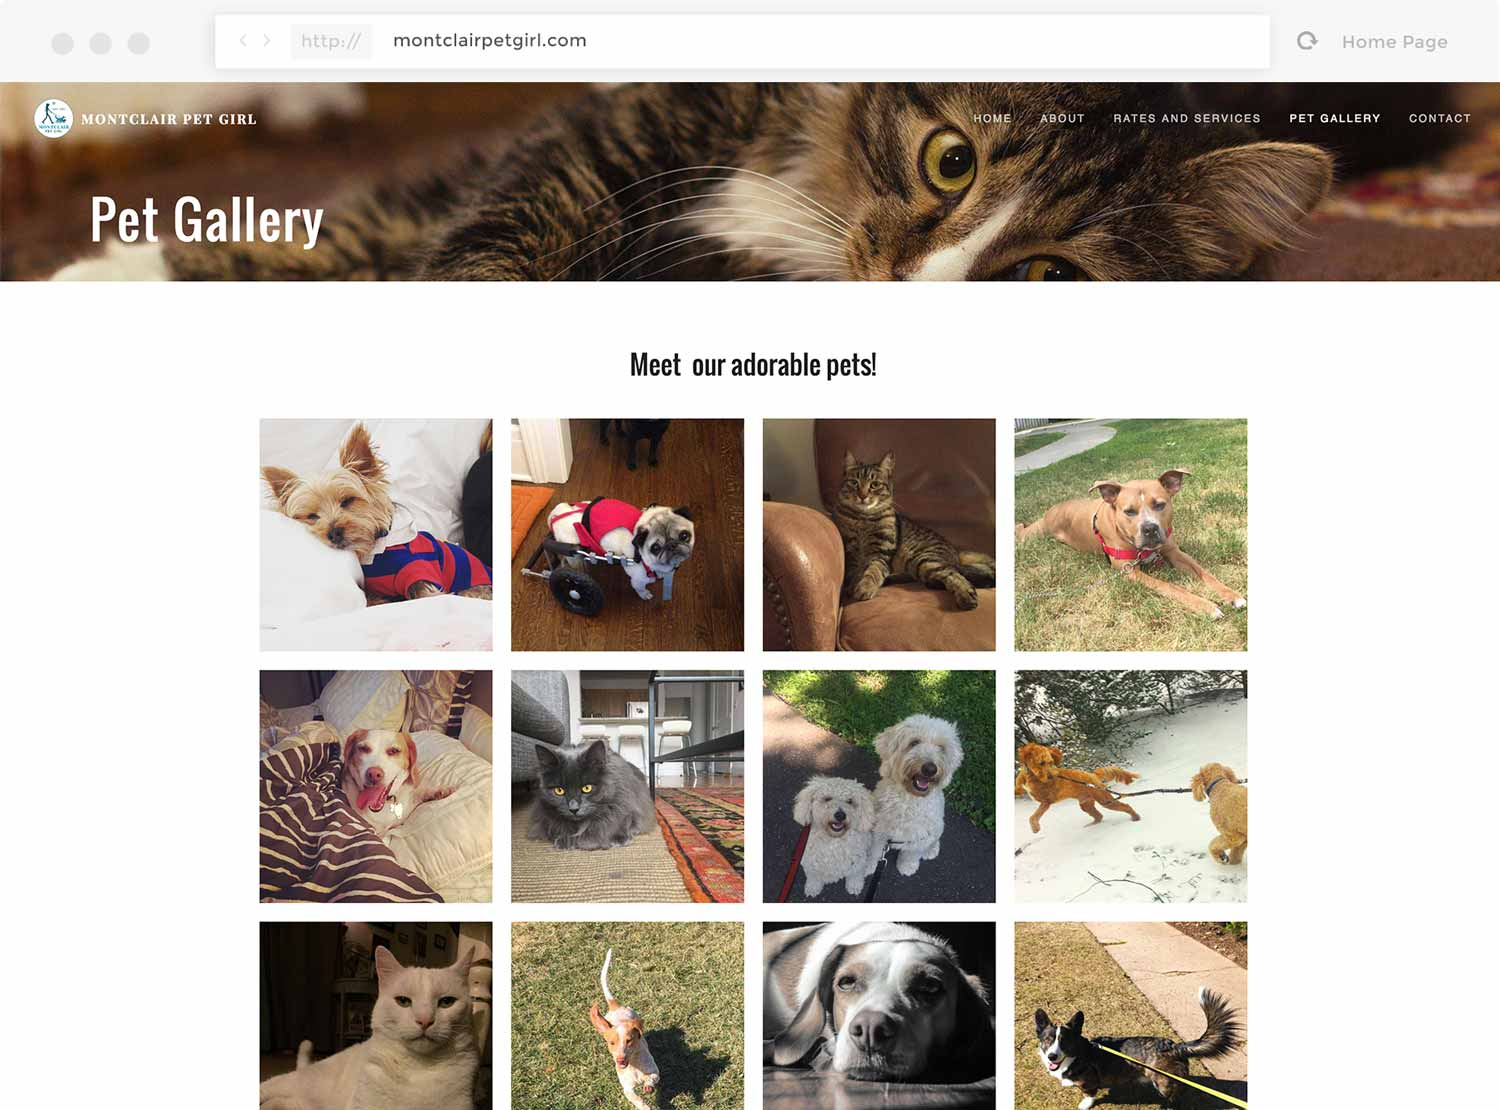 Screenshot of the Pet Gallery page on montclairpetgirl.com